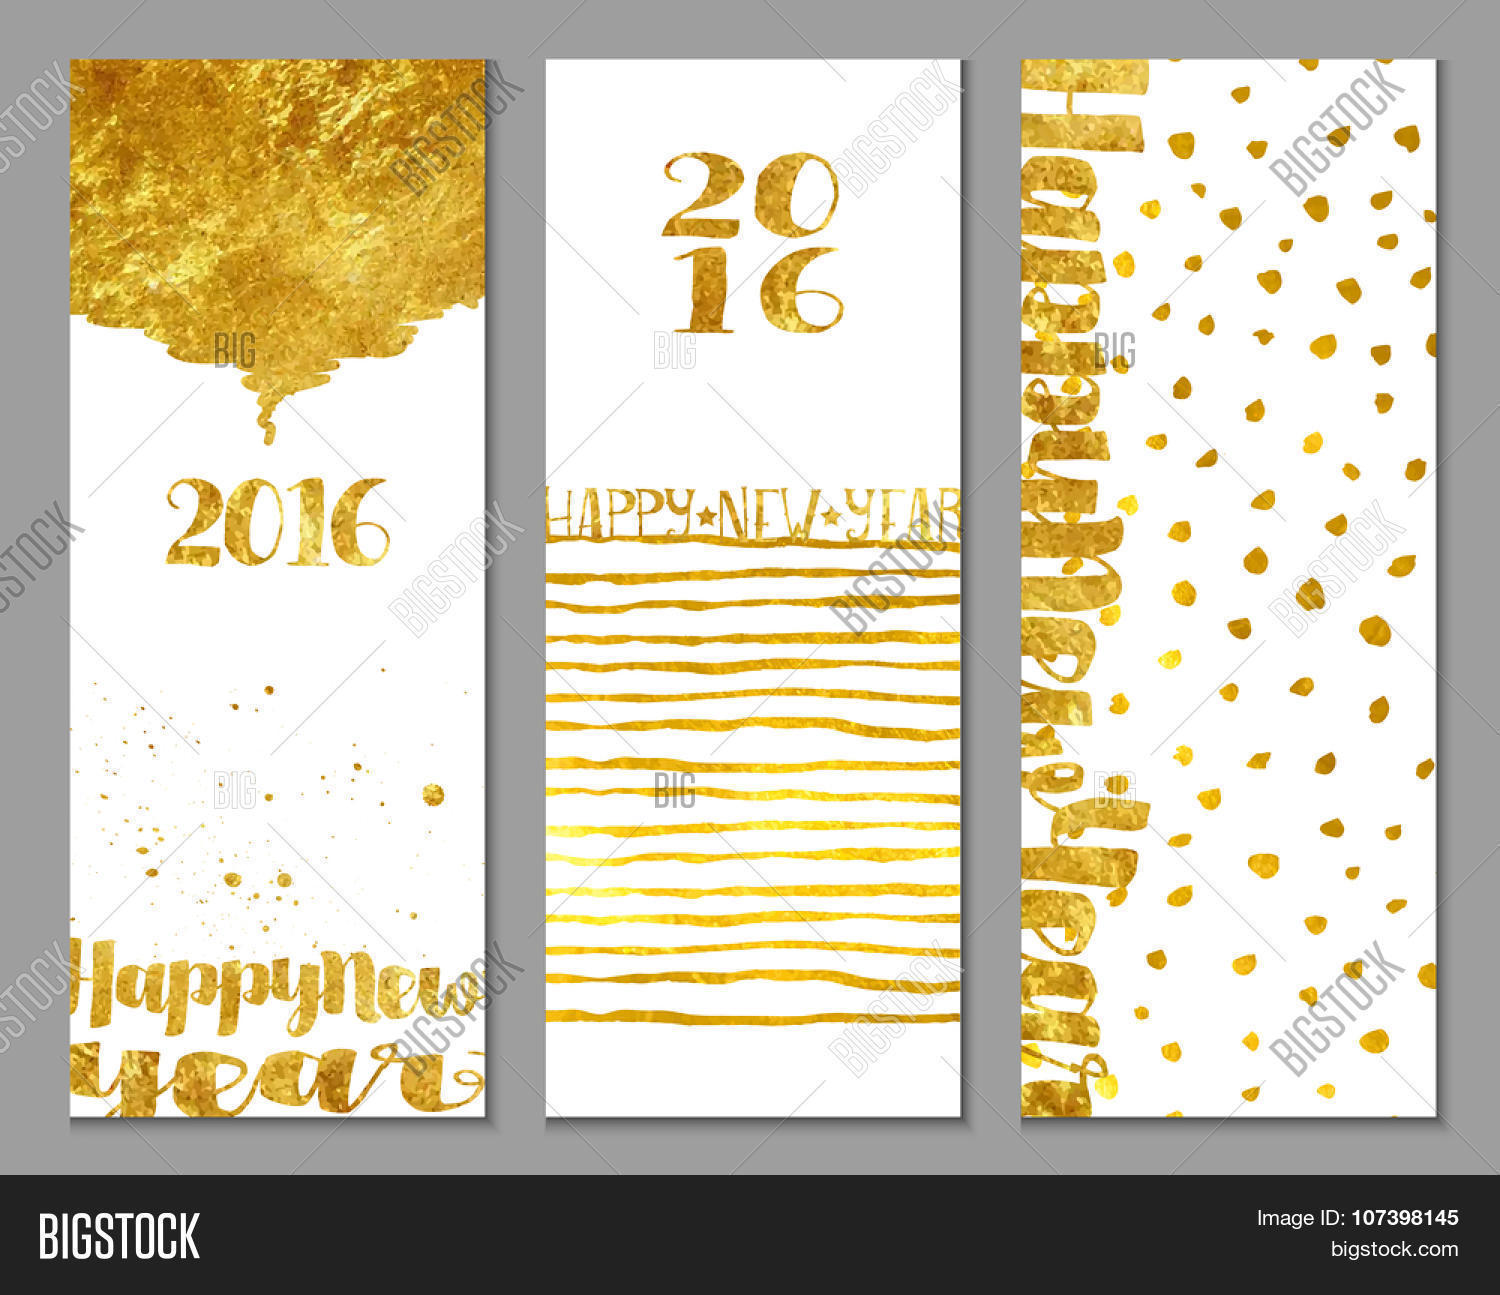 happy new year greetings vertical 2016 happy new year banners with shiny gold foil